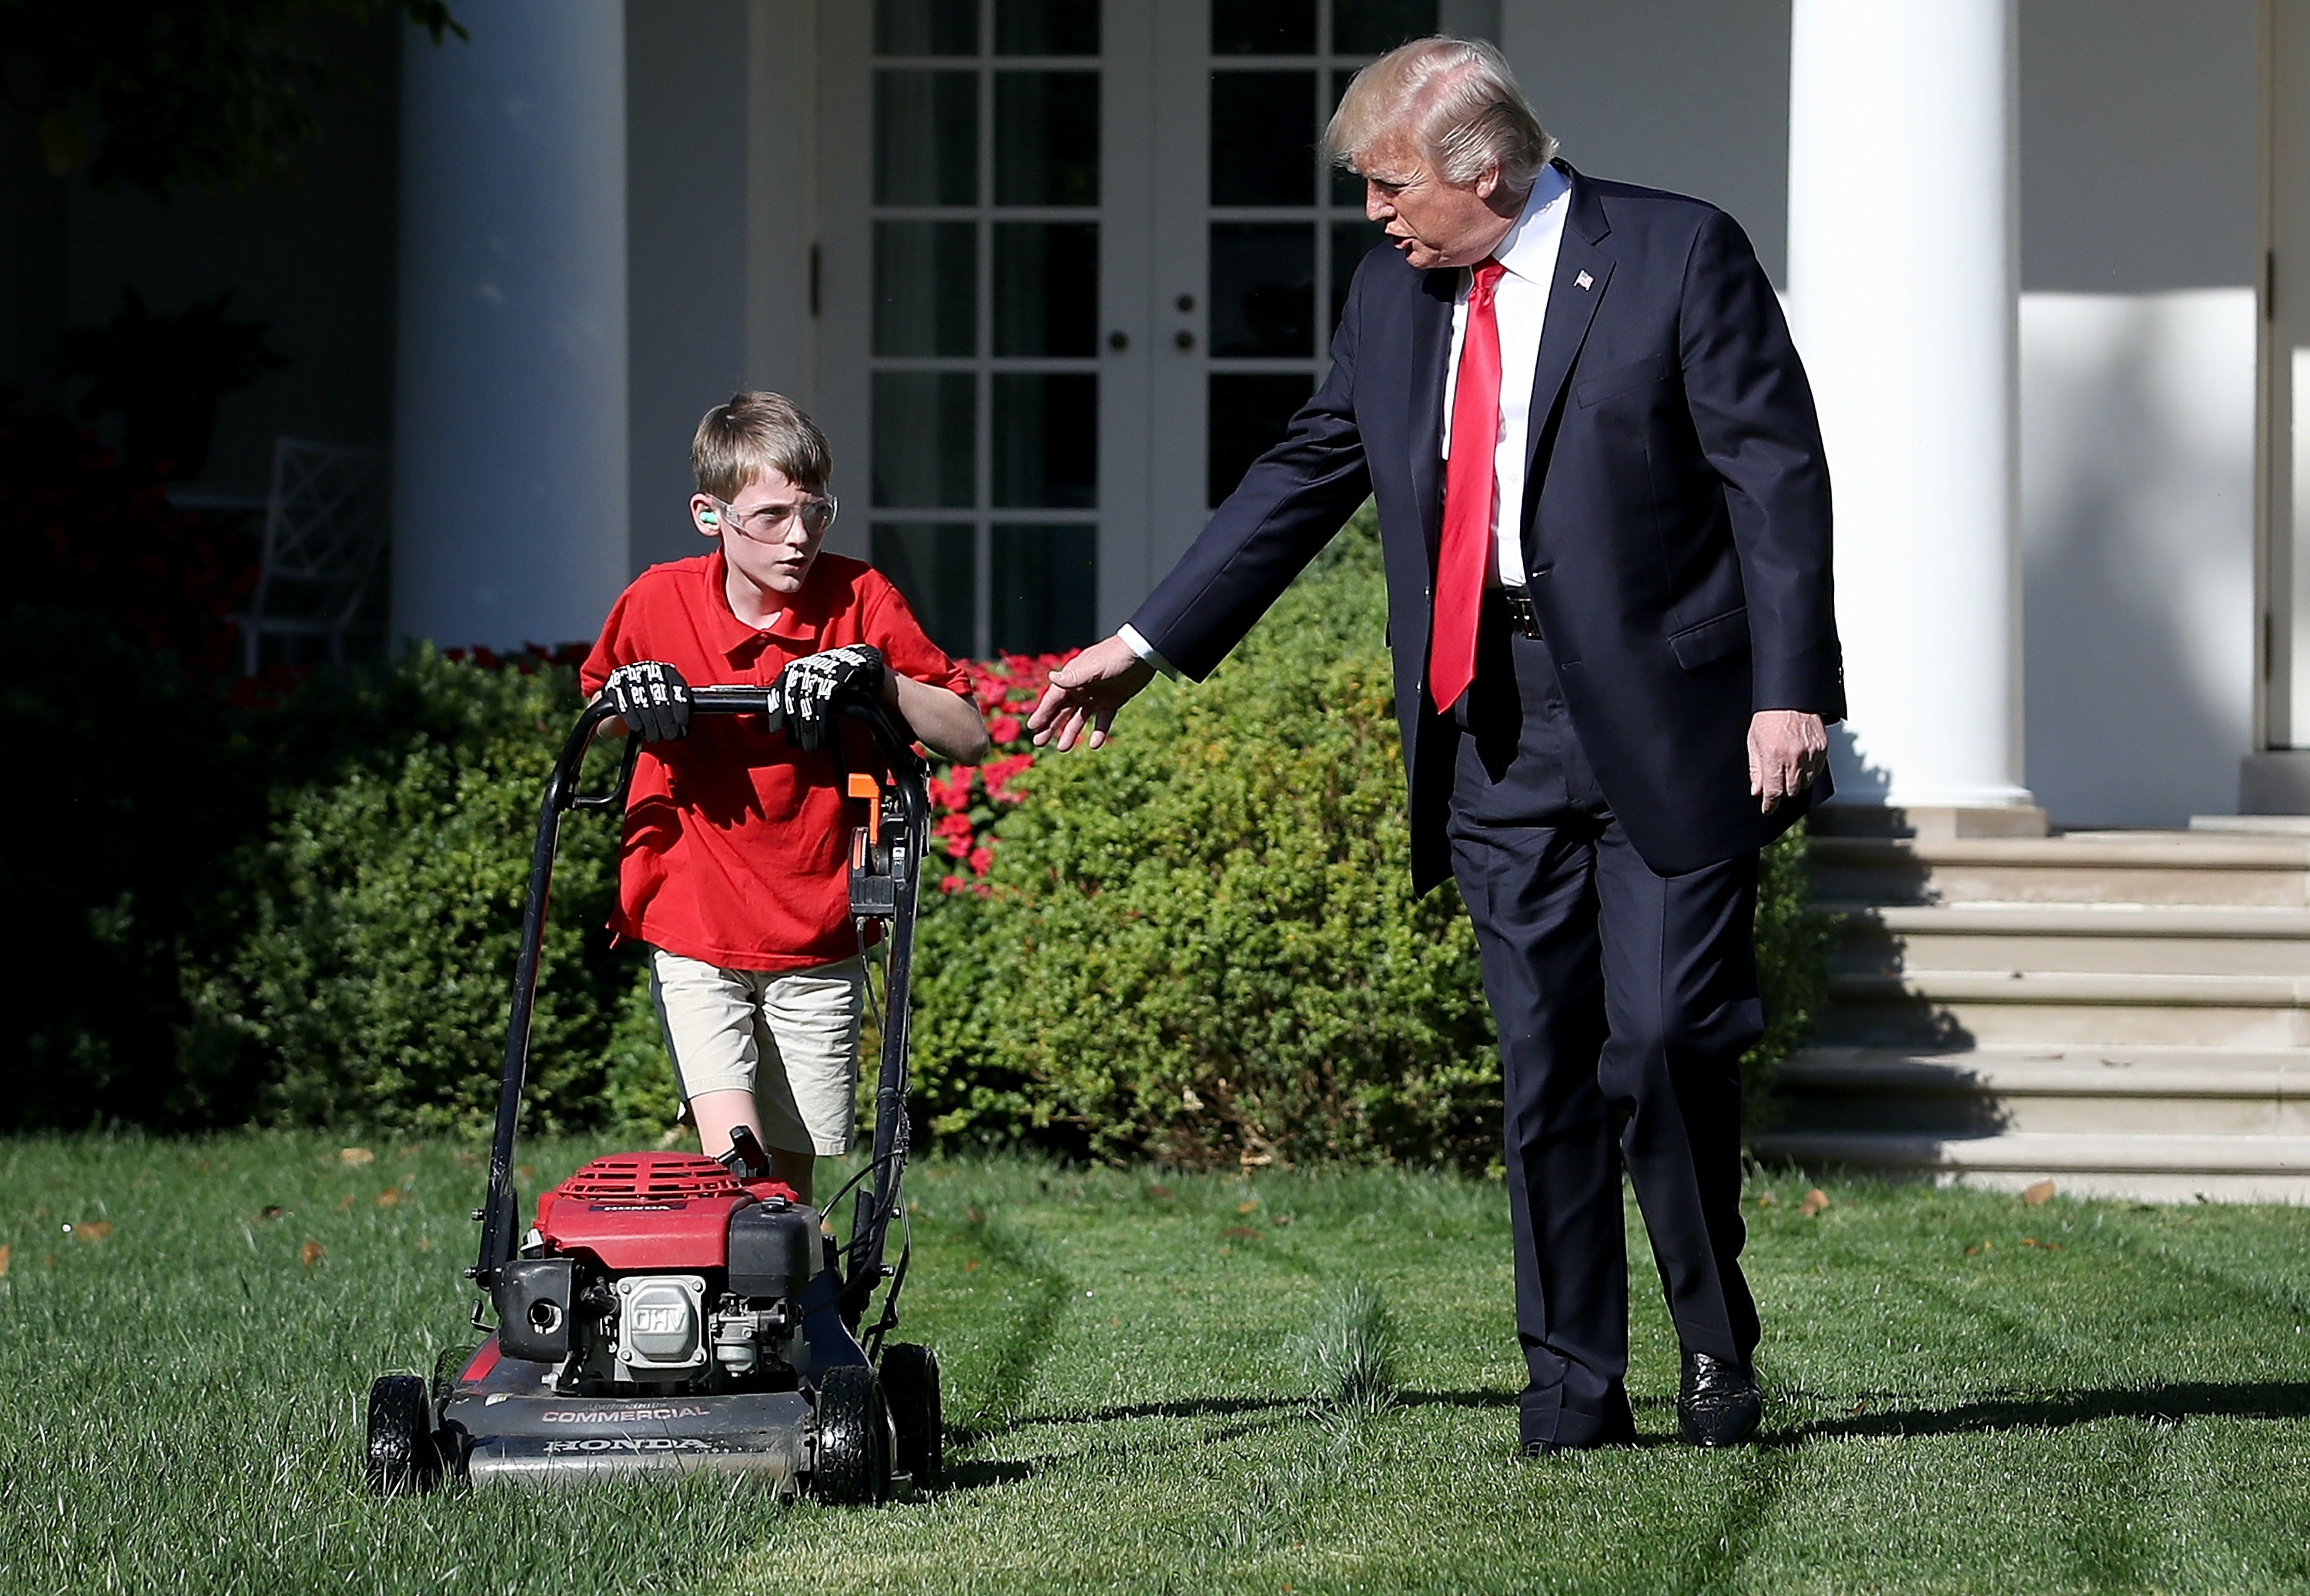 These Memes Of Frank The Lawn Mower Kid Ignoring Trump Will